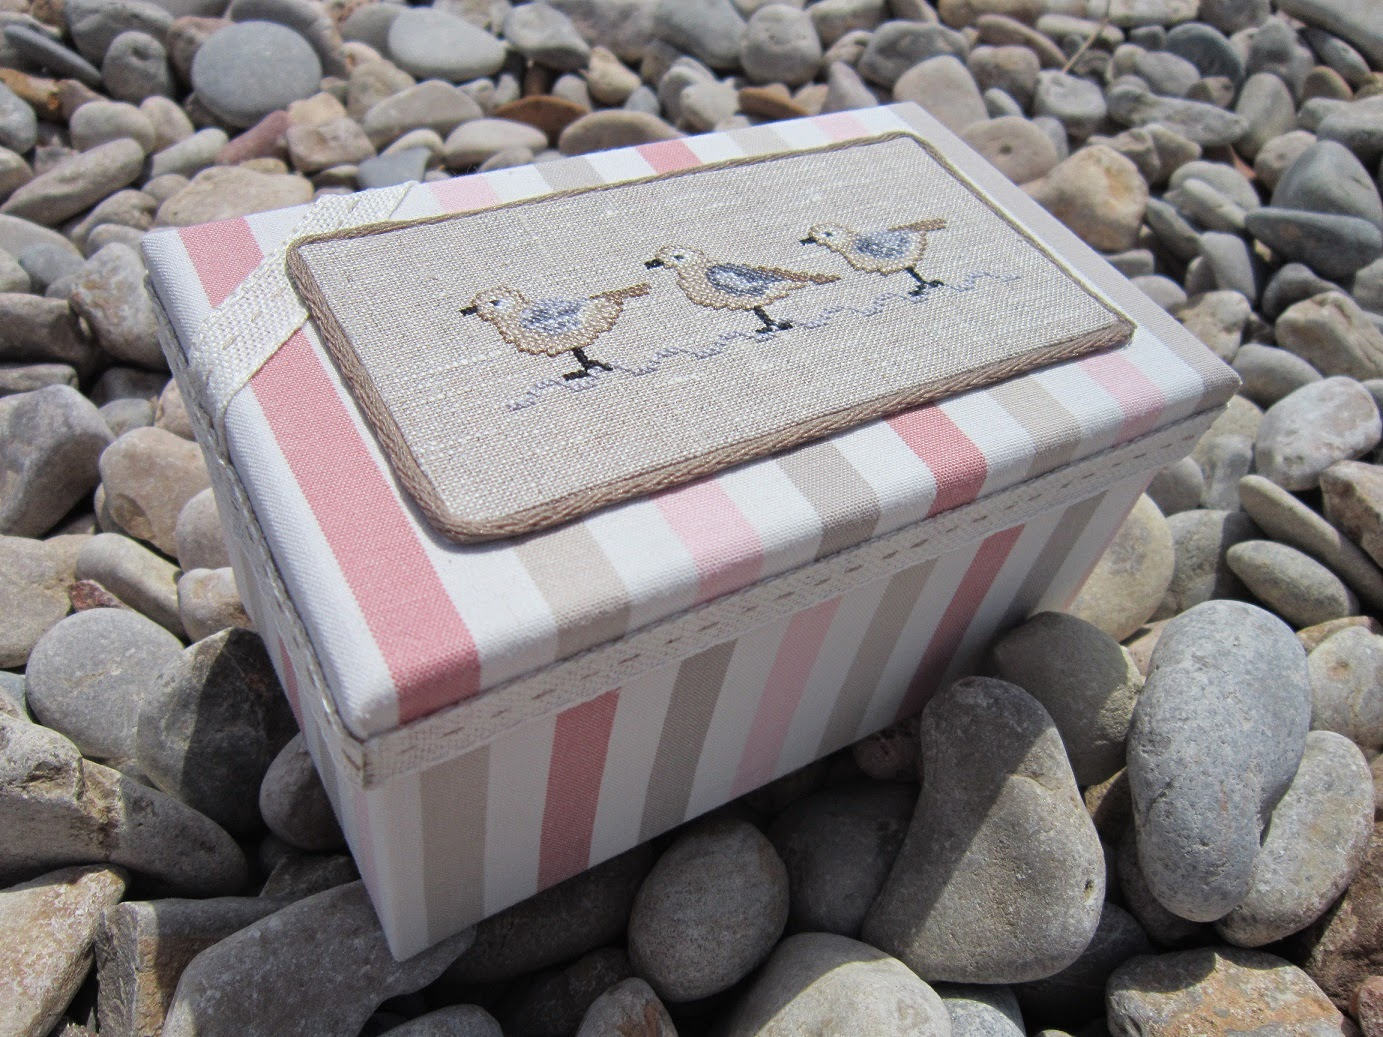 punto cruz, point croix, cross stitch, caja, box, boite, gaviota, seagull, playa, beach, plage